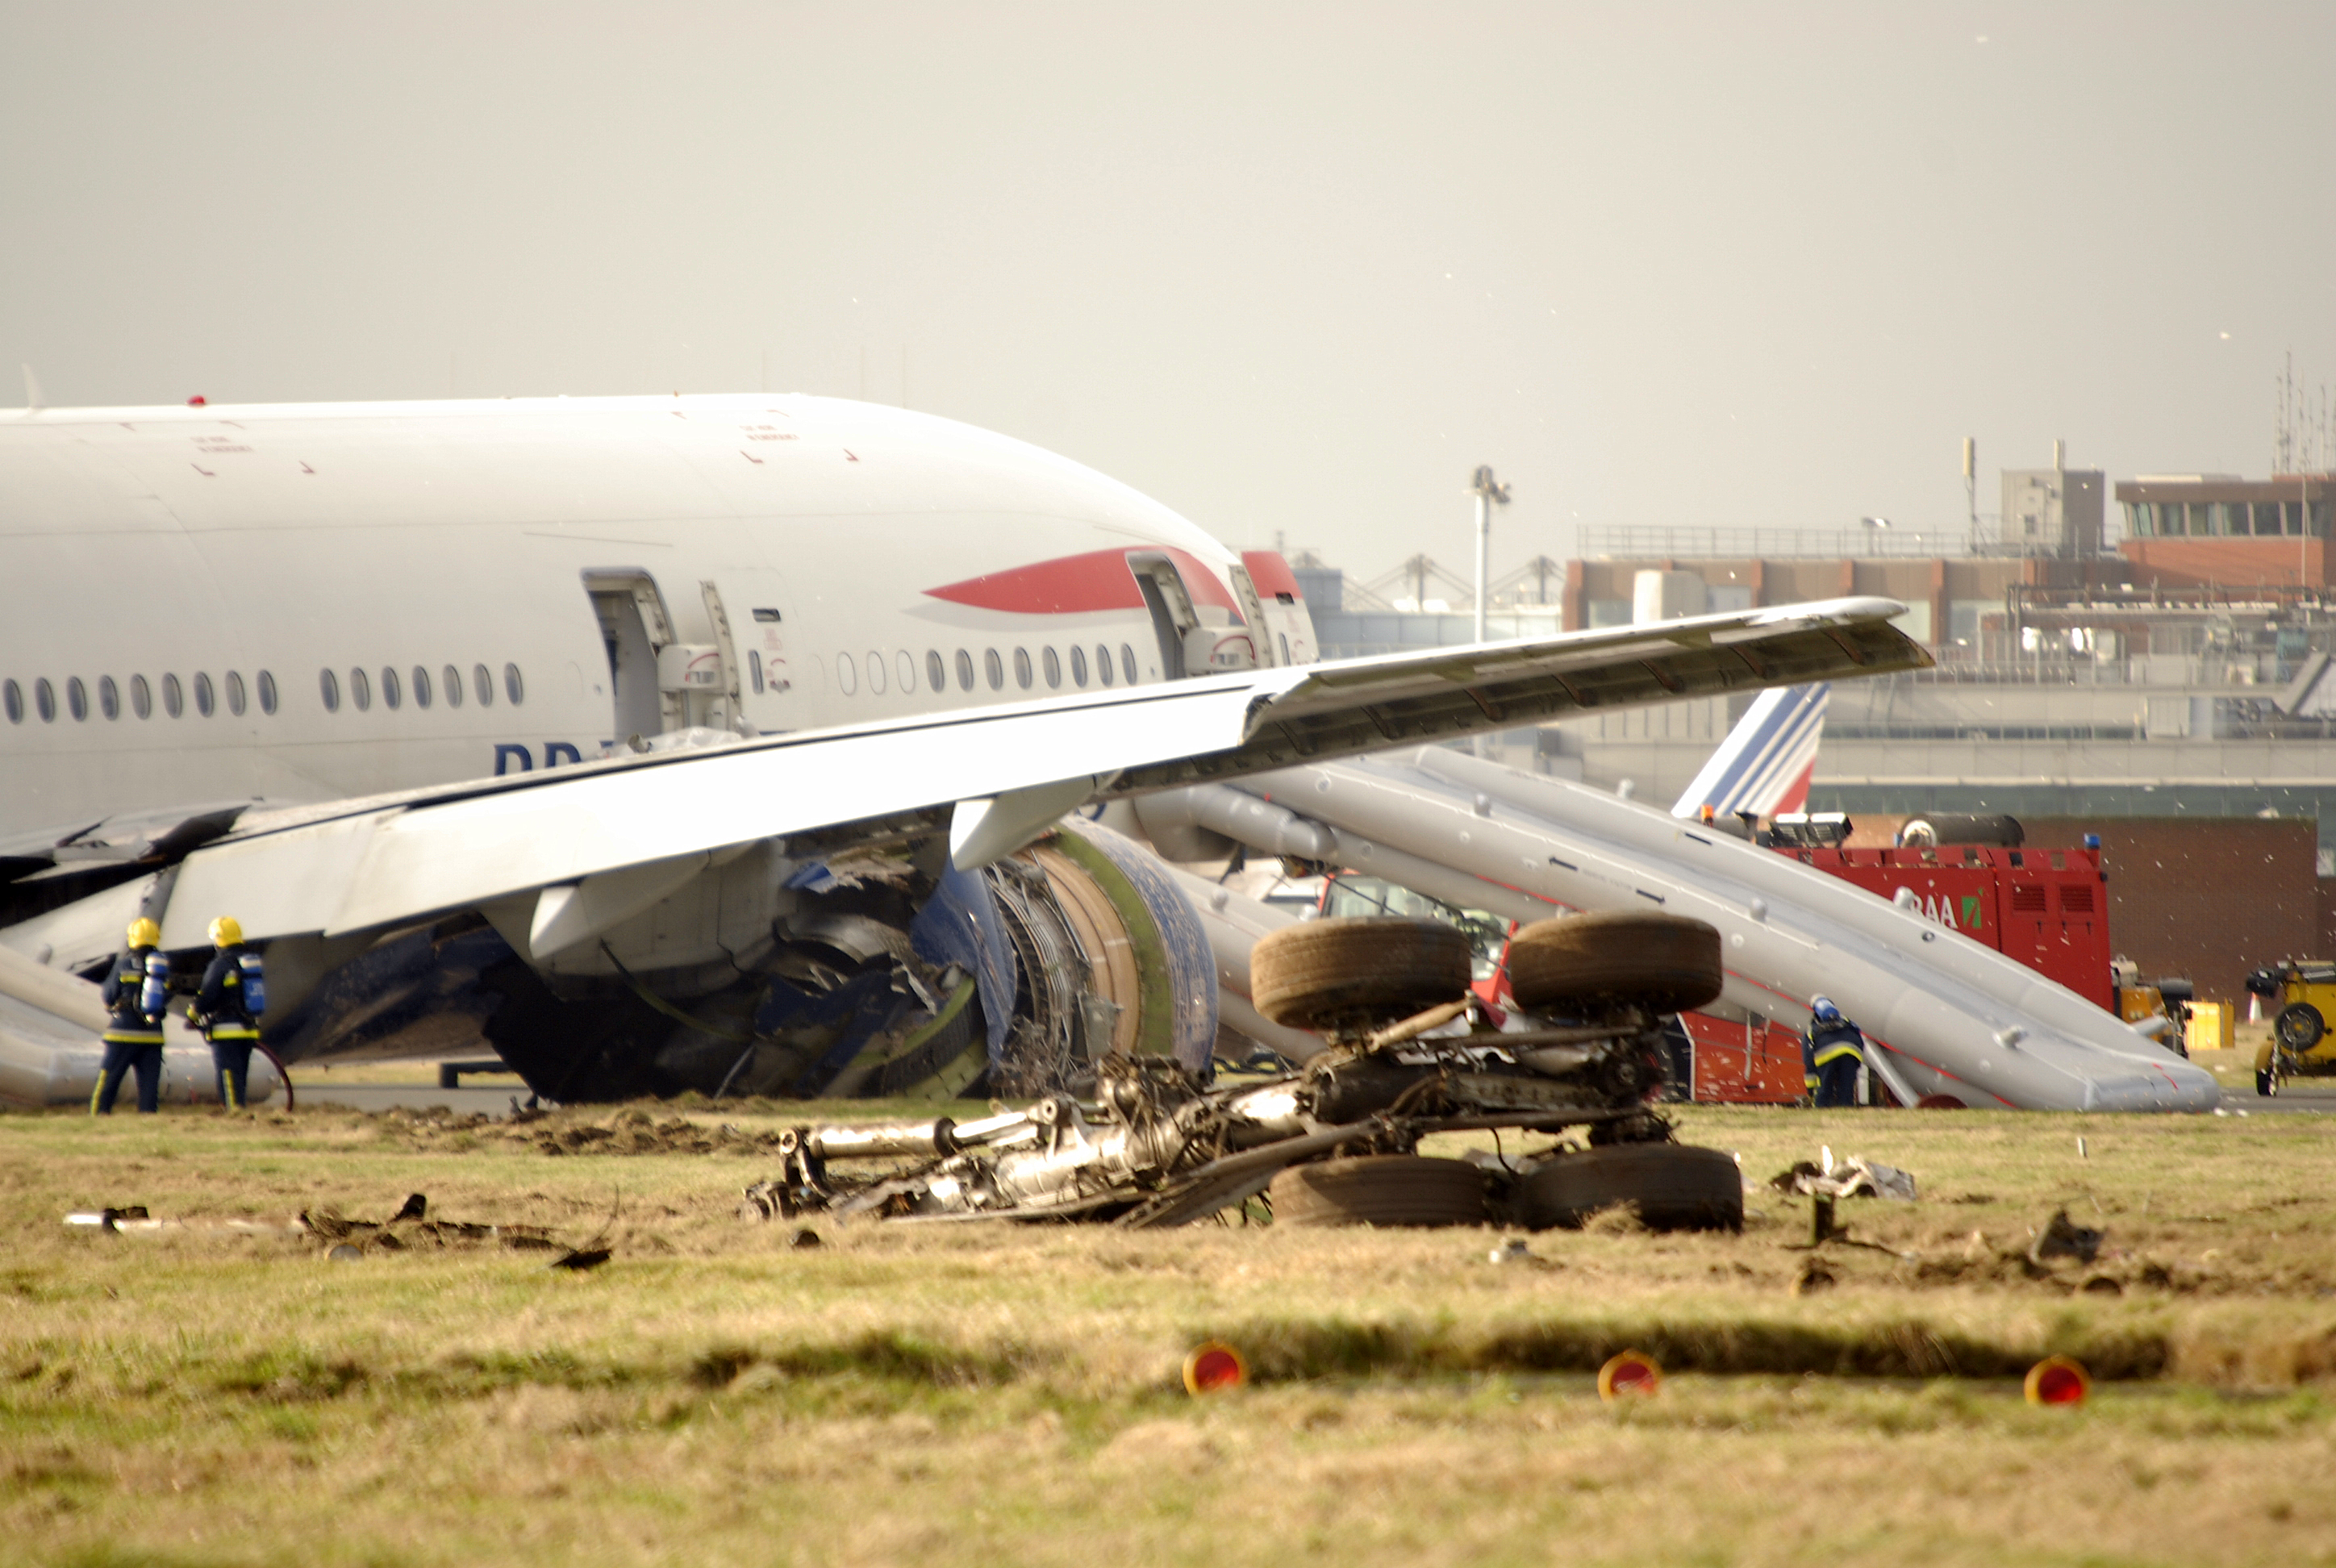 List of accidents and incidents involving commercial aircraft